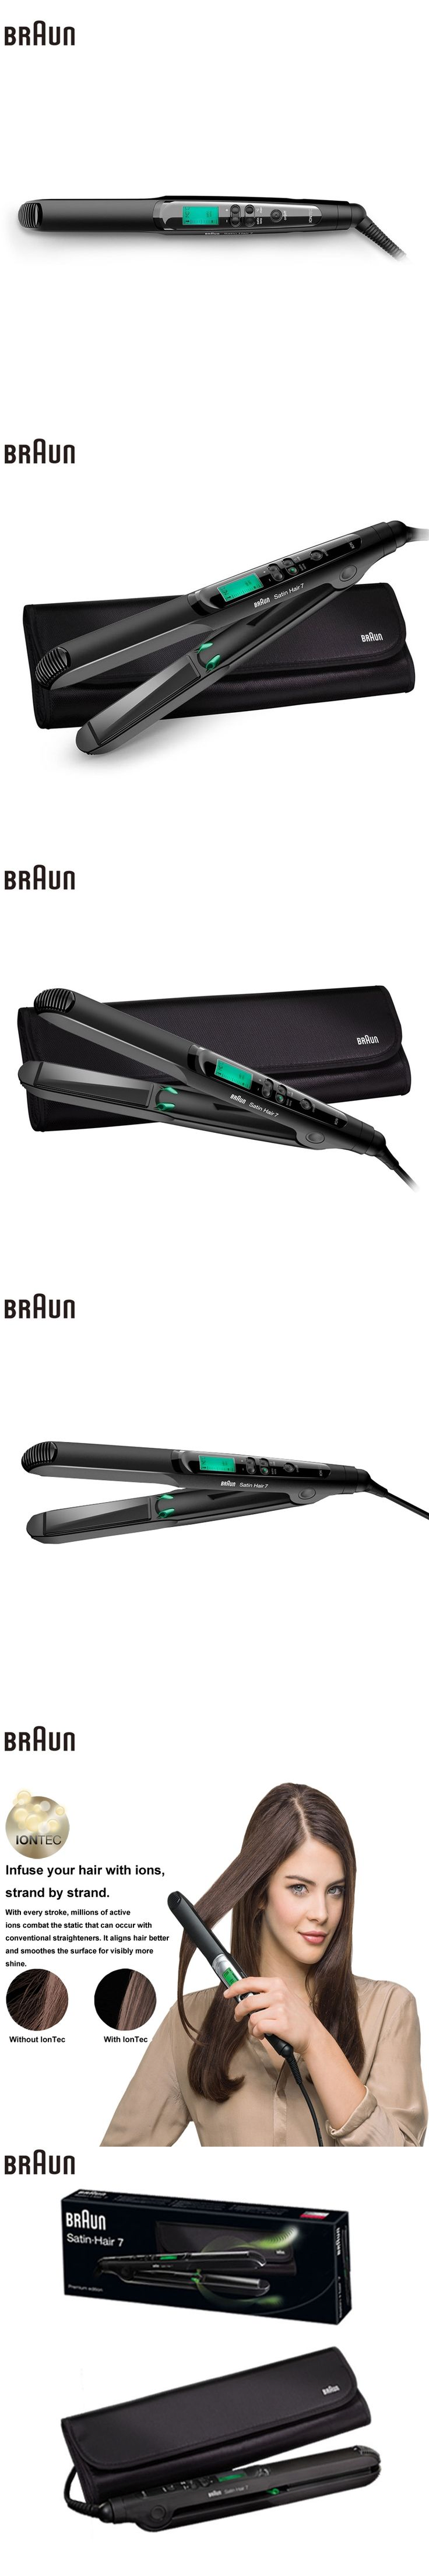 Braun Satin Hair 7 Iontec Straightener ST730 Hair Care Styling Tools Curling Straightening Irons Professional Roller 100-240v